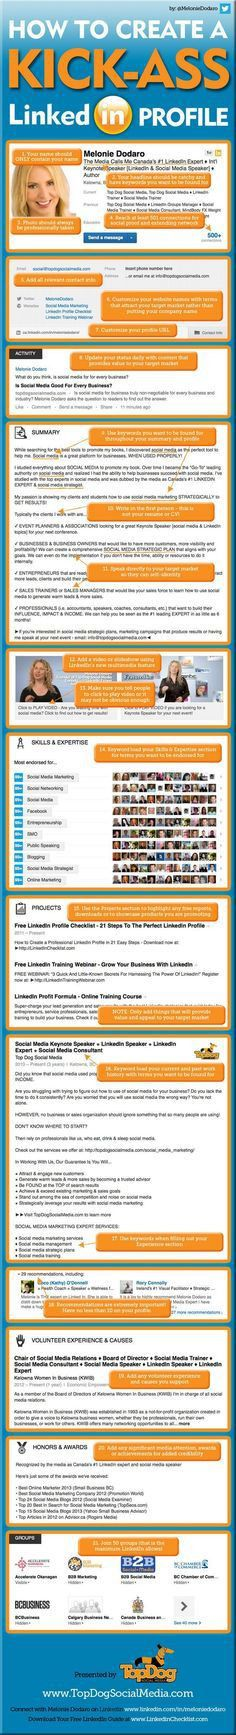 6 Ways to Attract Recruiters to Your LinkedIn Profile | Resume ...